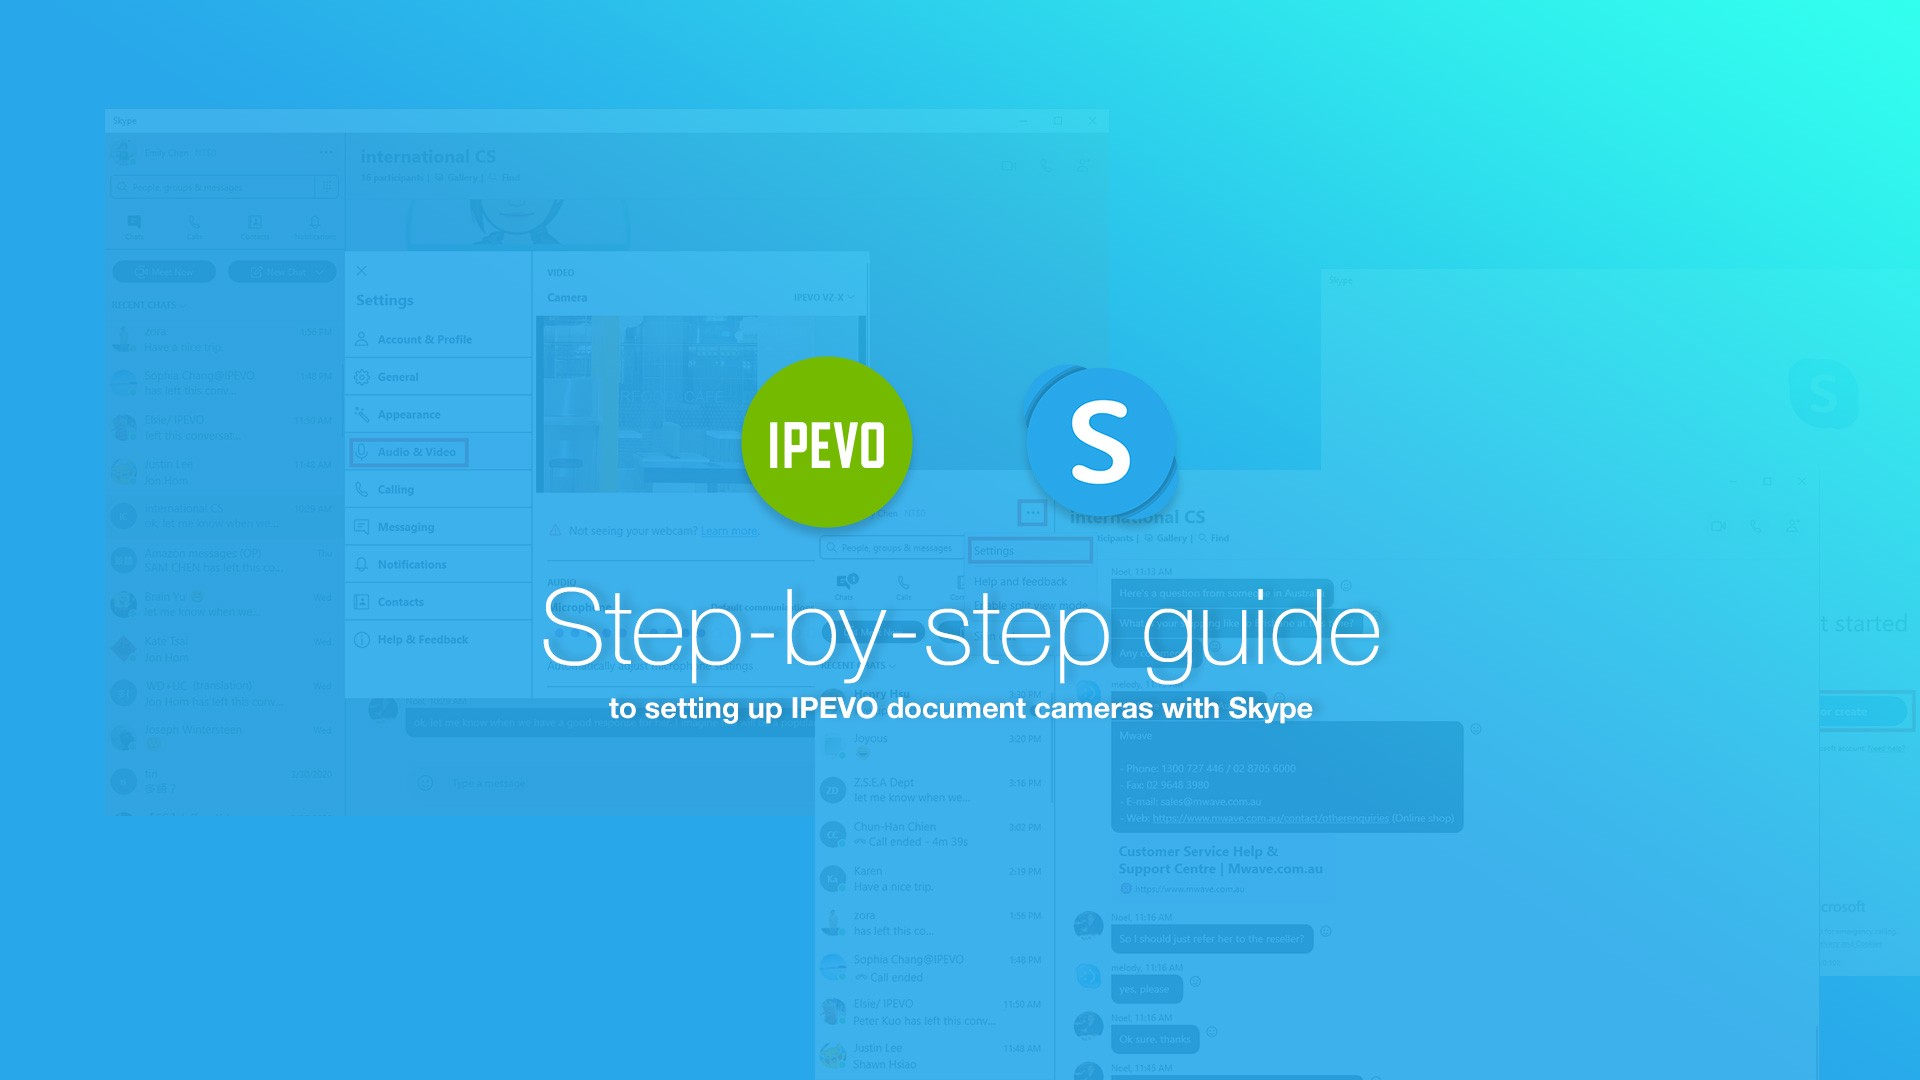 Step-by-step guide to setting up IPEVO document cameras with Skype